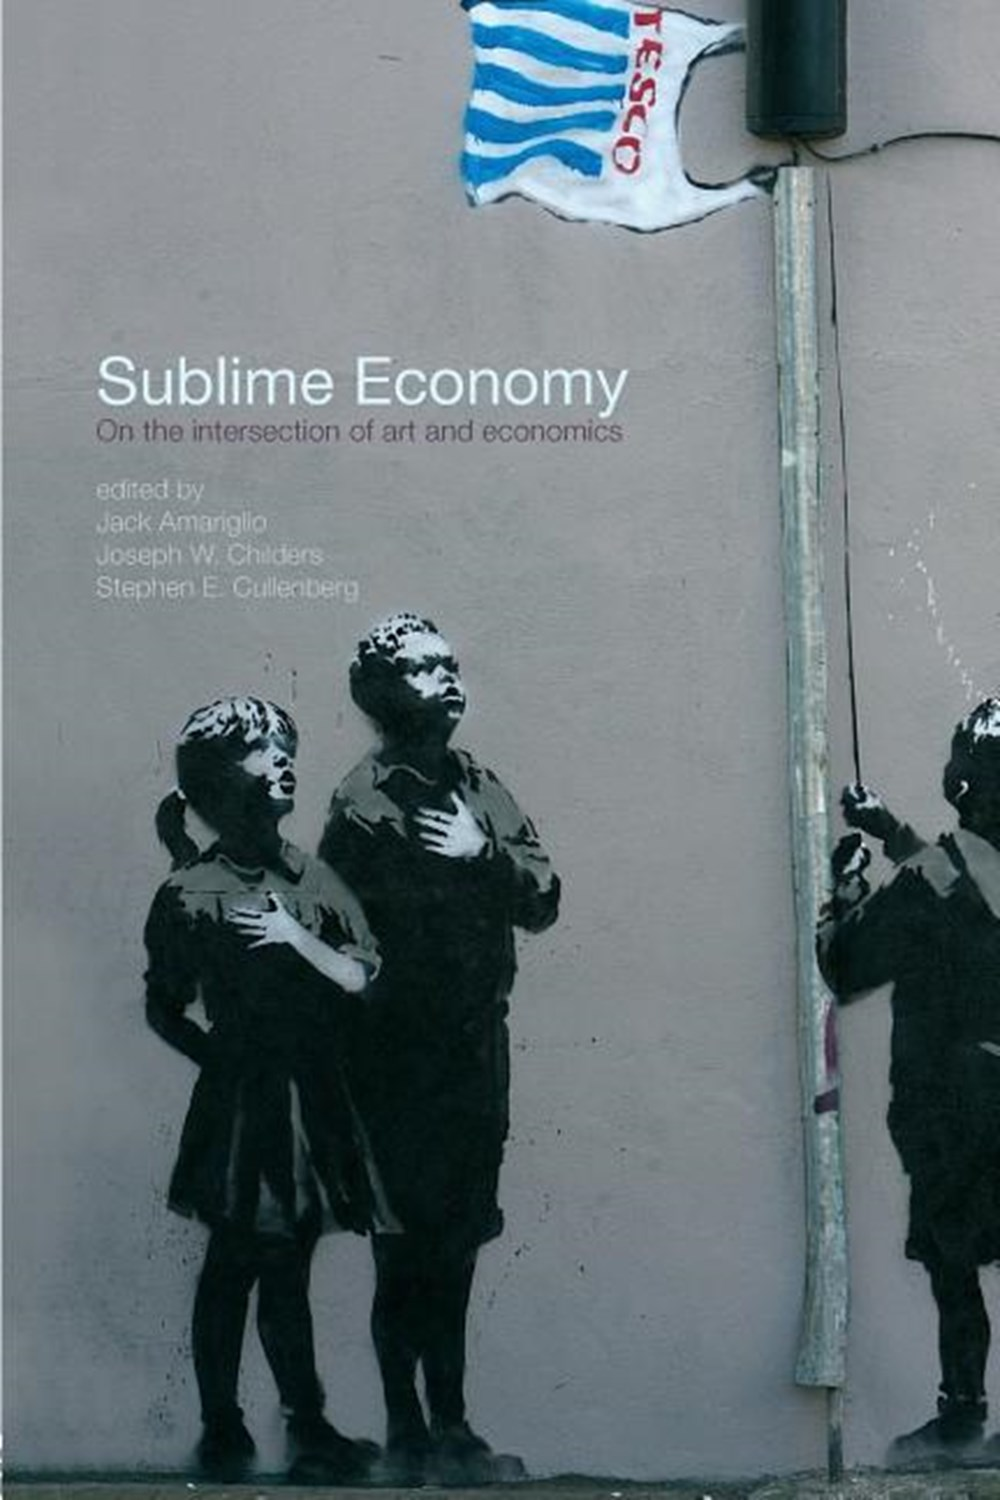 Sublime Economy On the intersection of art and economics